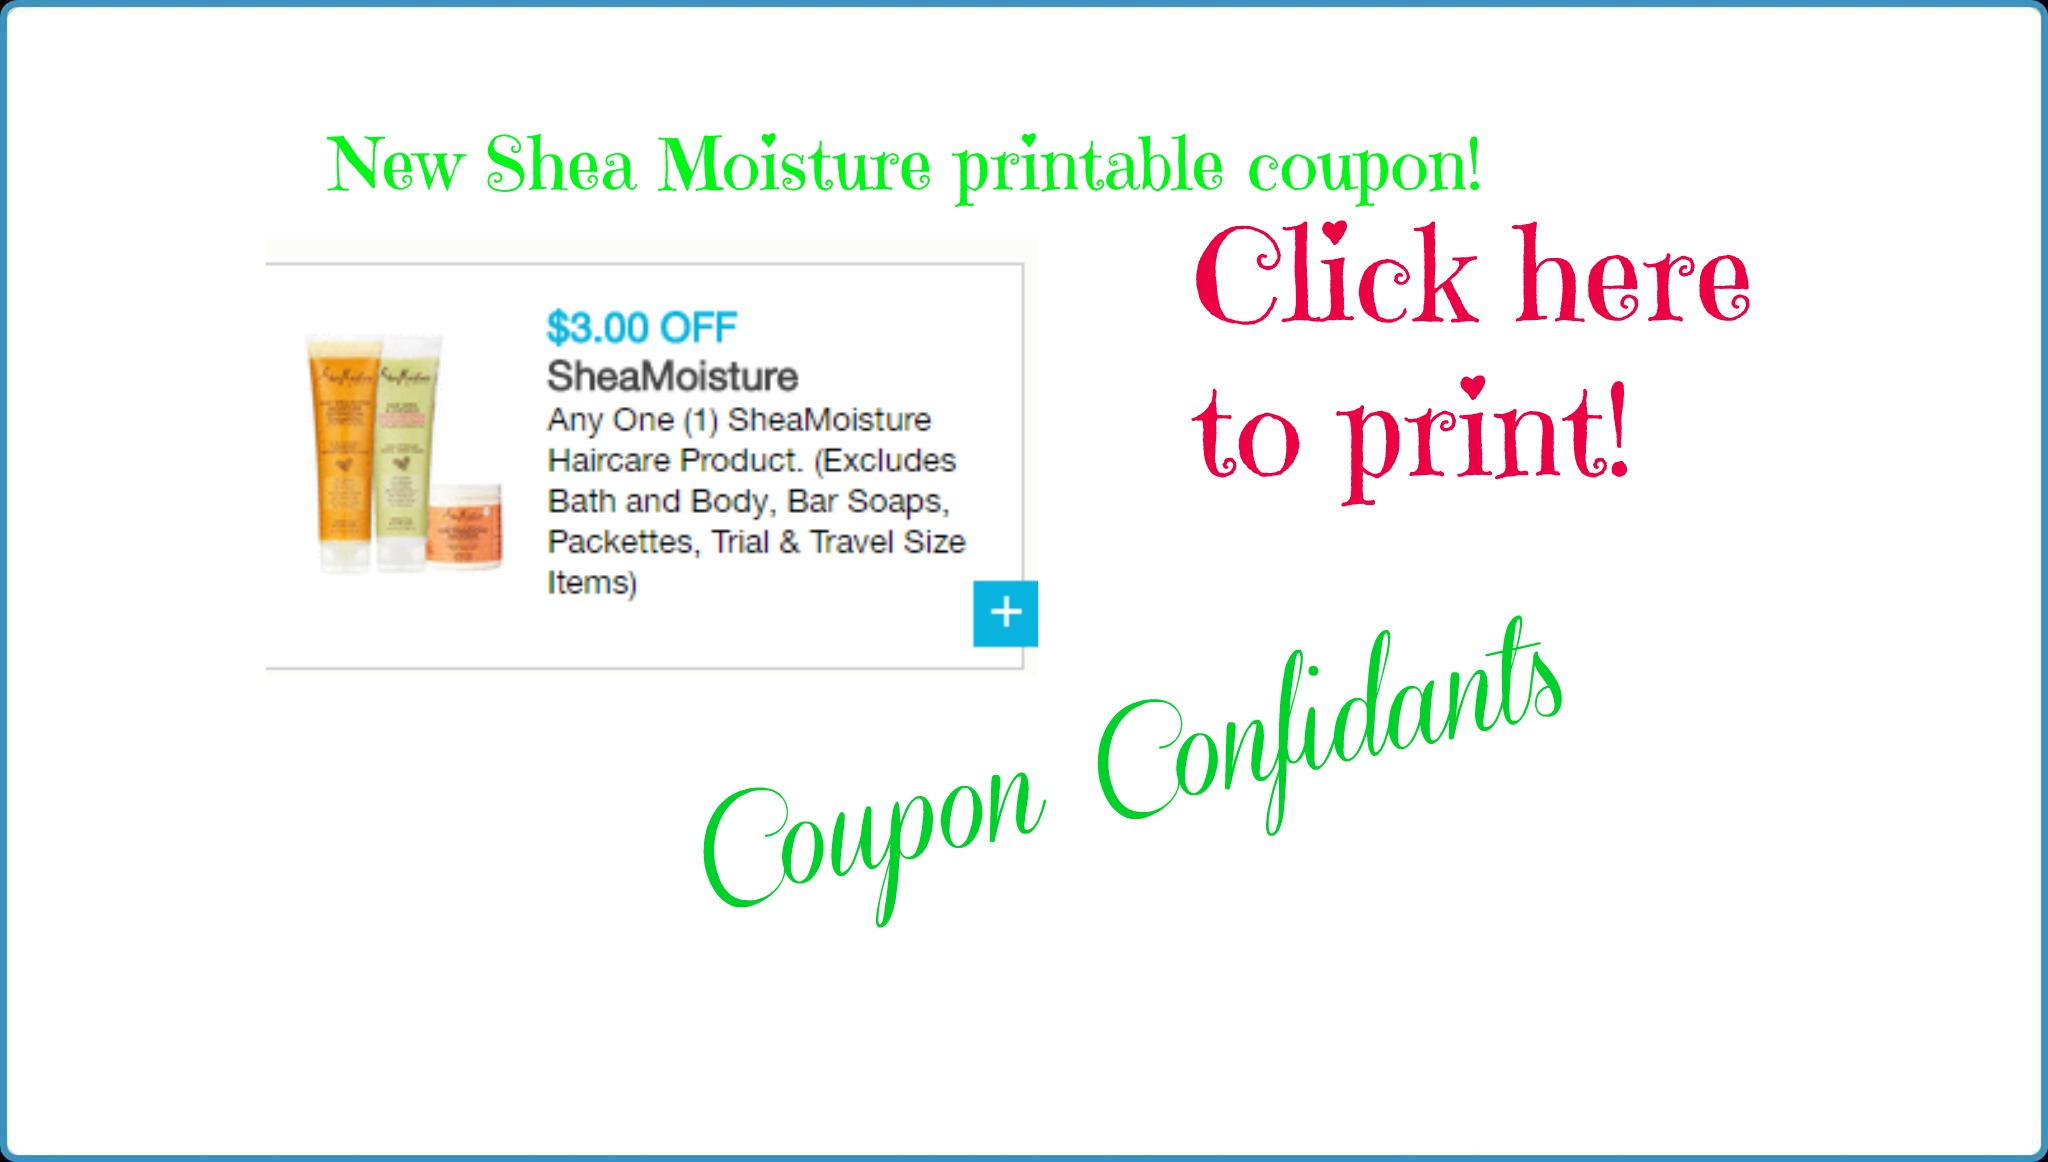 image regarding Shea Moisture Printable Coupons known as Scorching fresh $3/1 Shea Dampness coupon! Simply click listed here towards print